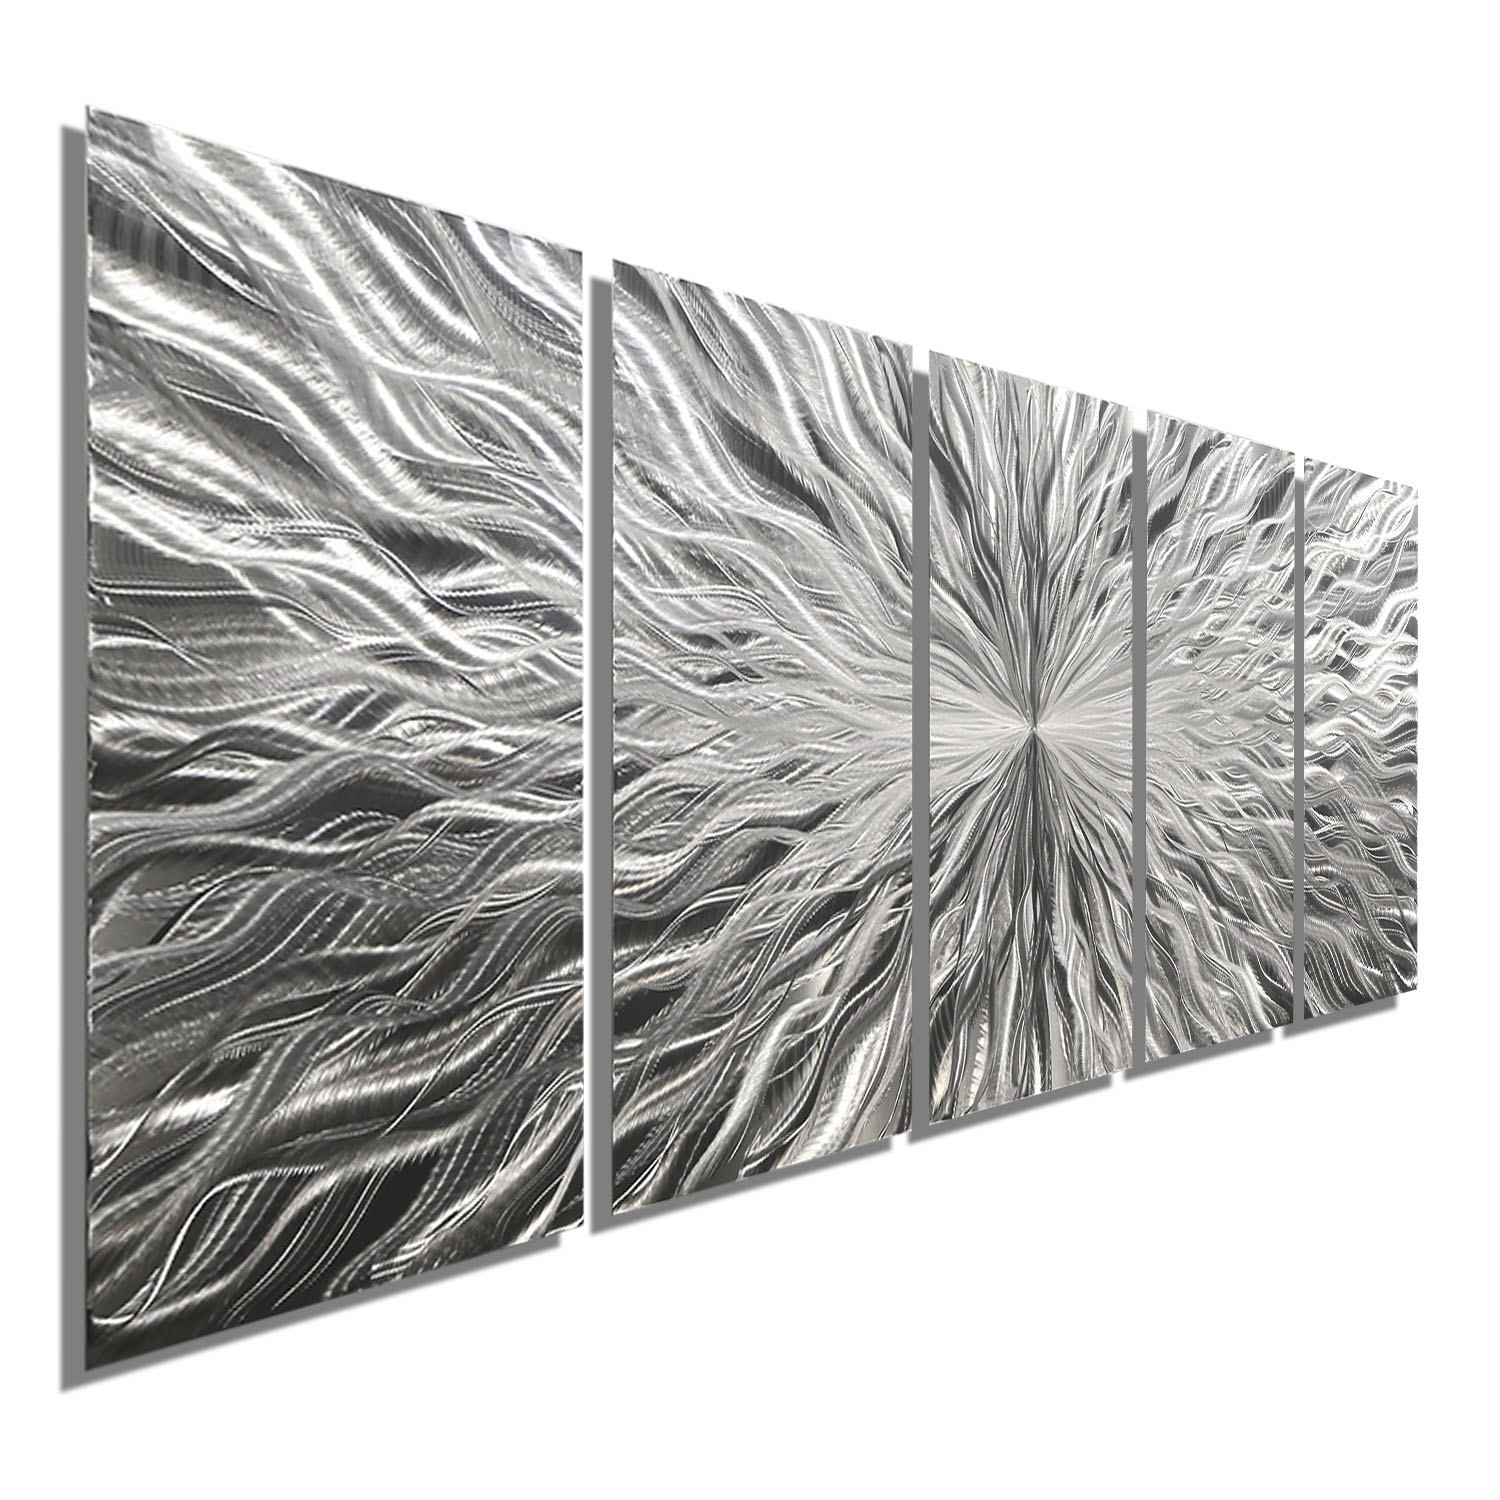 Vortex 5 – Five Panel Silver Modern Abstract Metal Wall Artjon With Most Recent Abstract Metal Wall Art Panels (View 16 of 20)